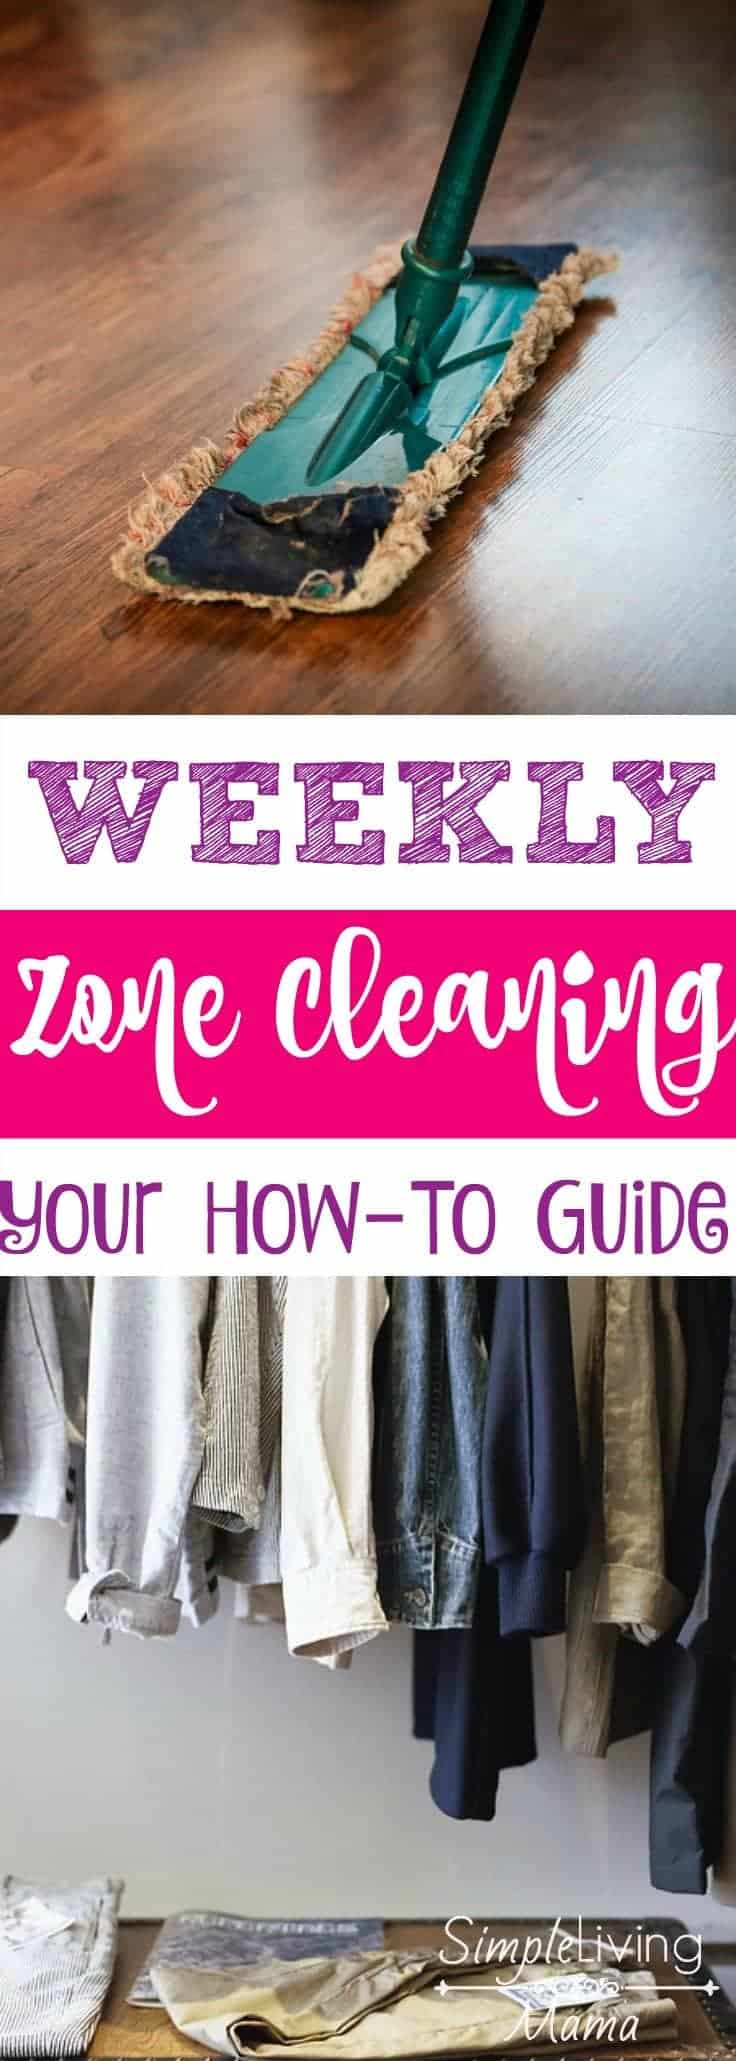 Weekly Zone Cleaning | A How-To Guide